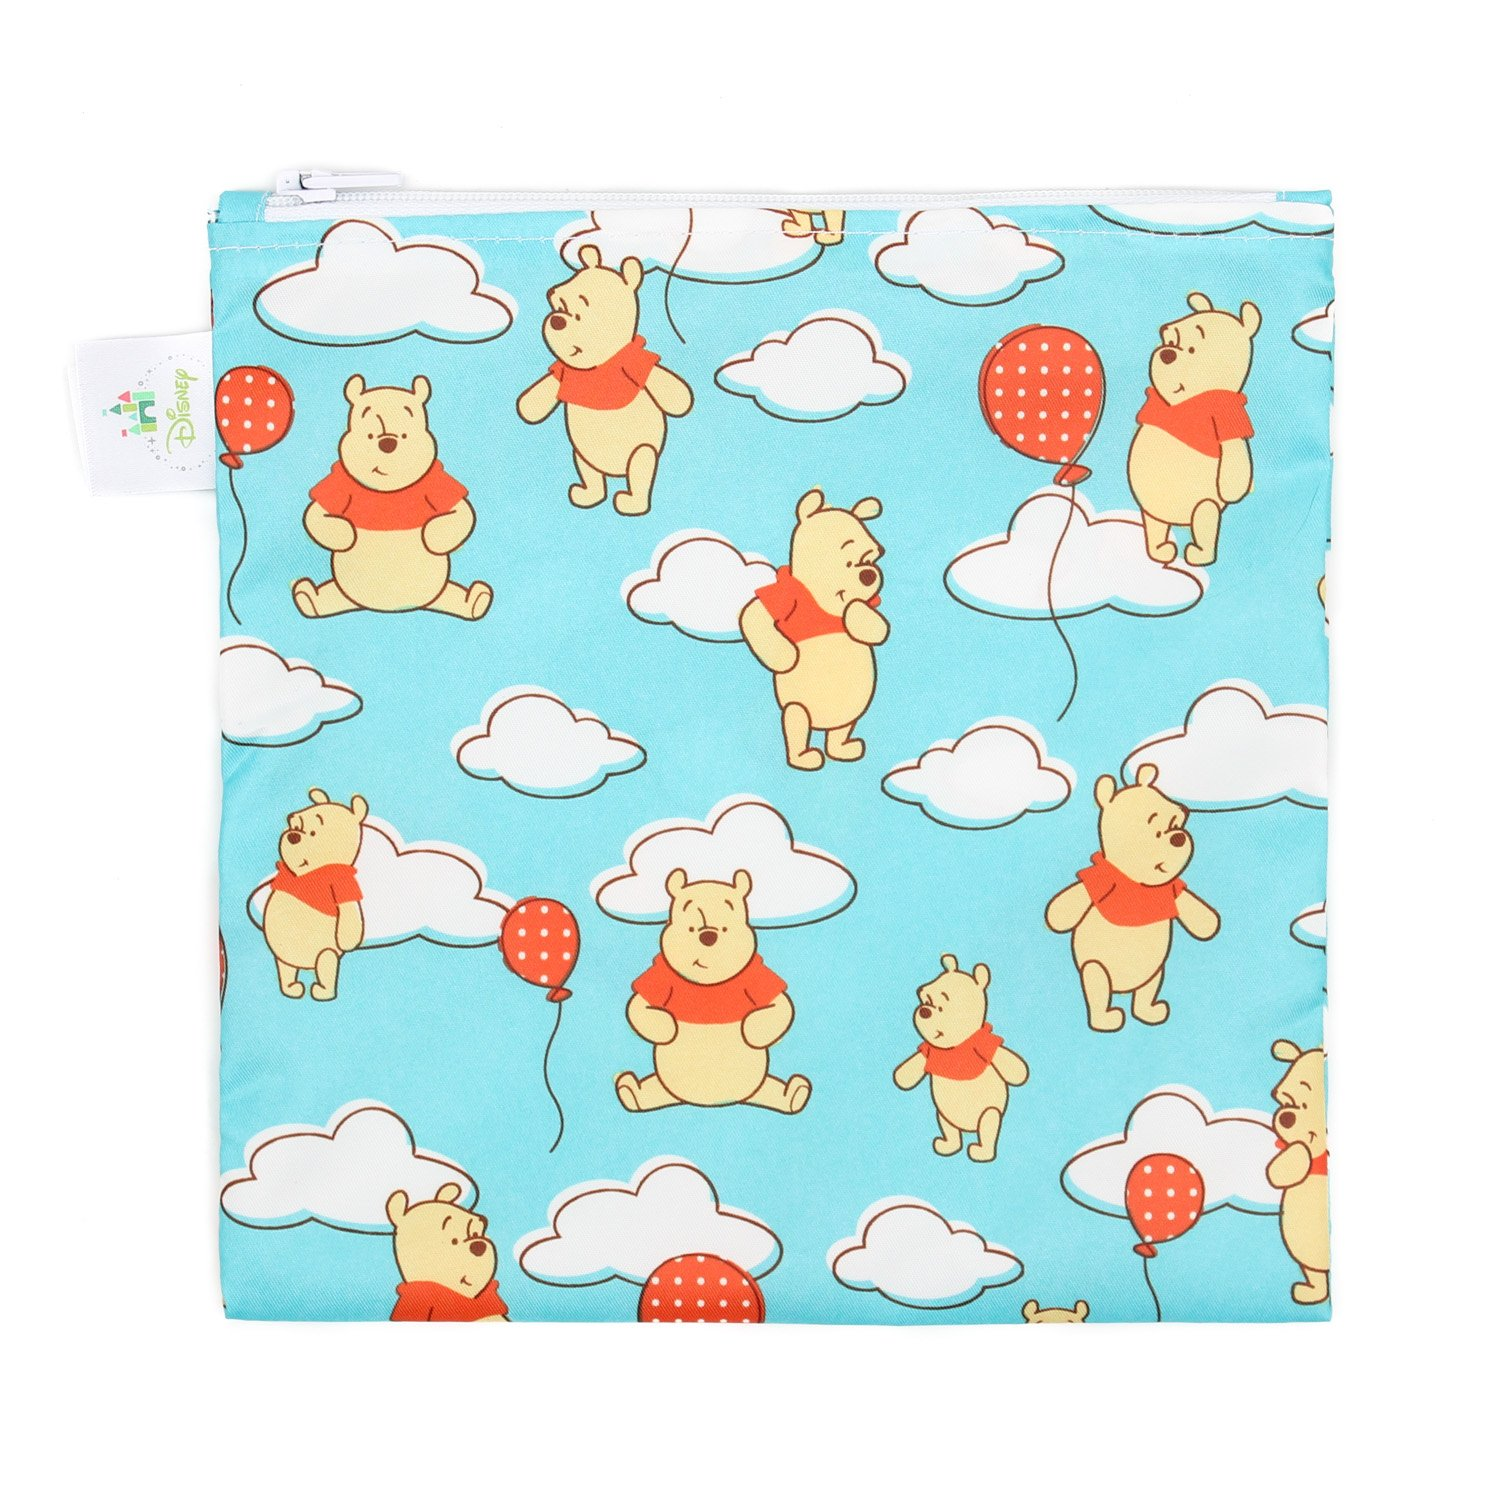 Bumkins Disney Winnie The Pooh Sandwich Bag / Snack Bag, Reusable, Washable, Food Safe, BPA Free, 7x7 , Pack of 1